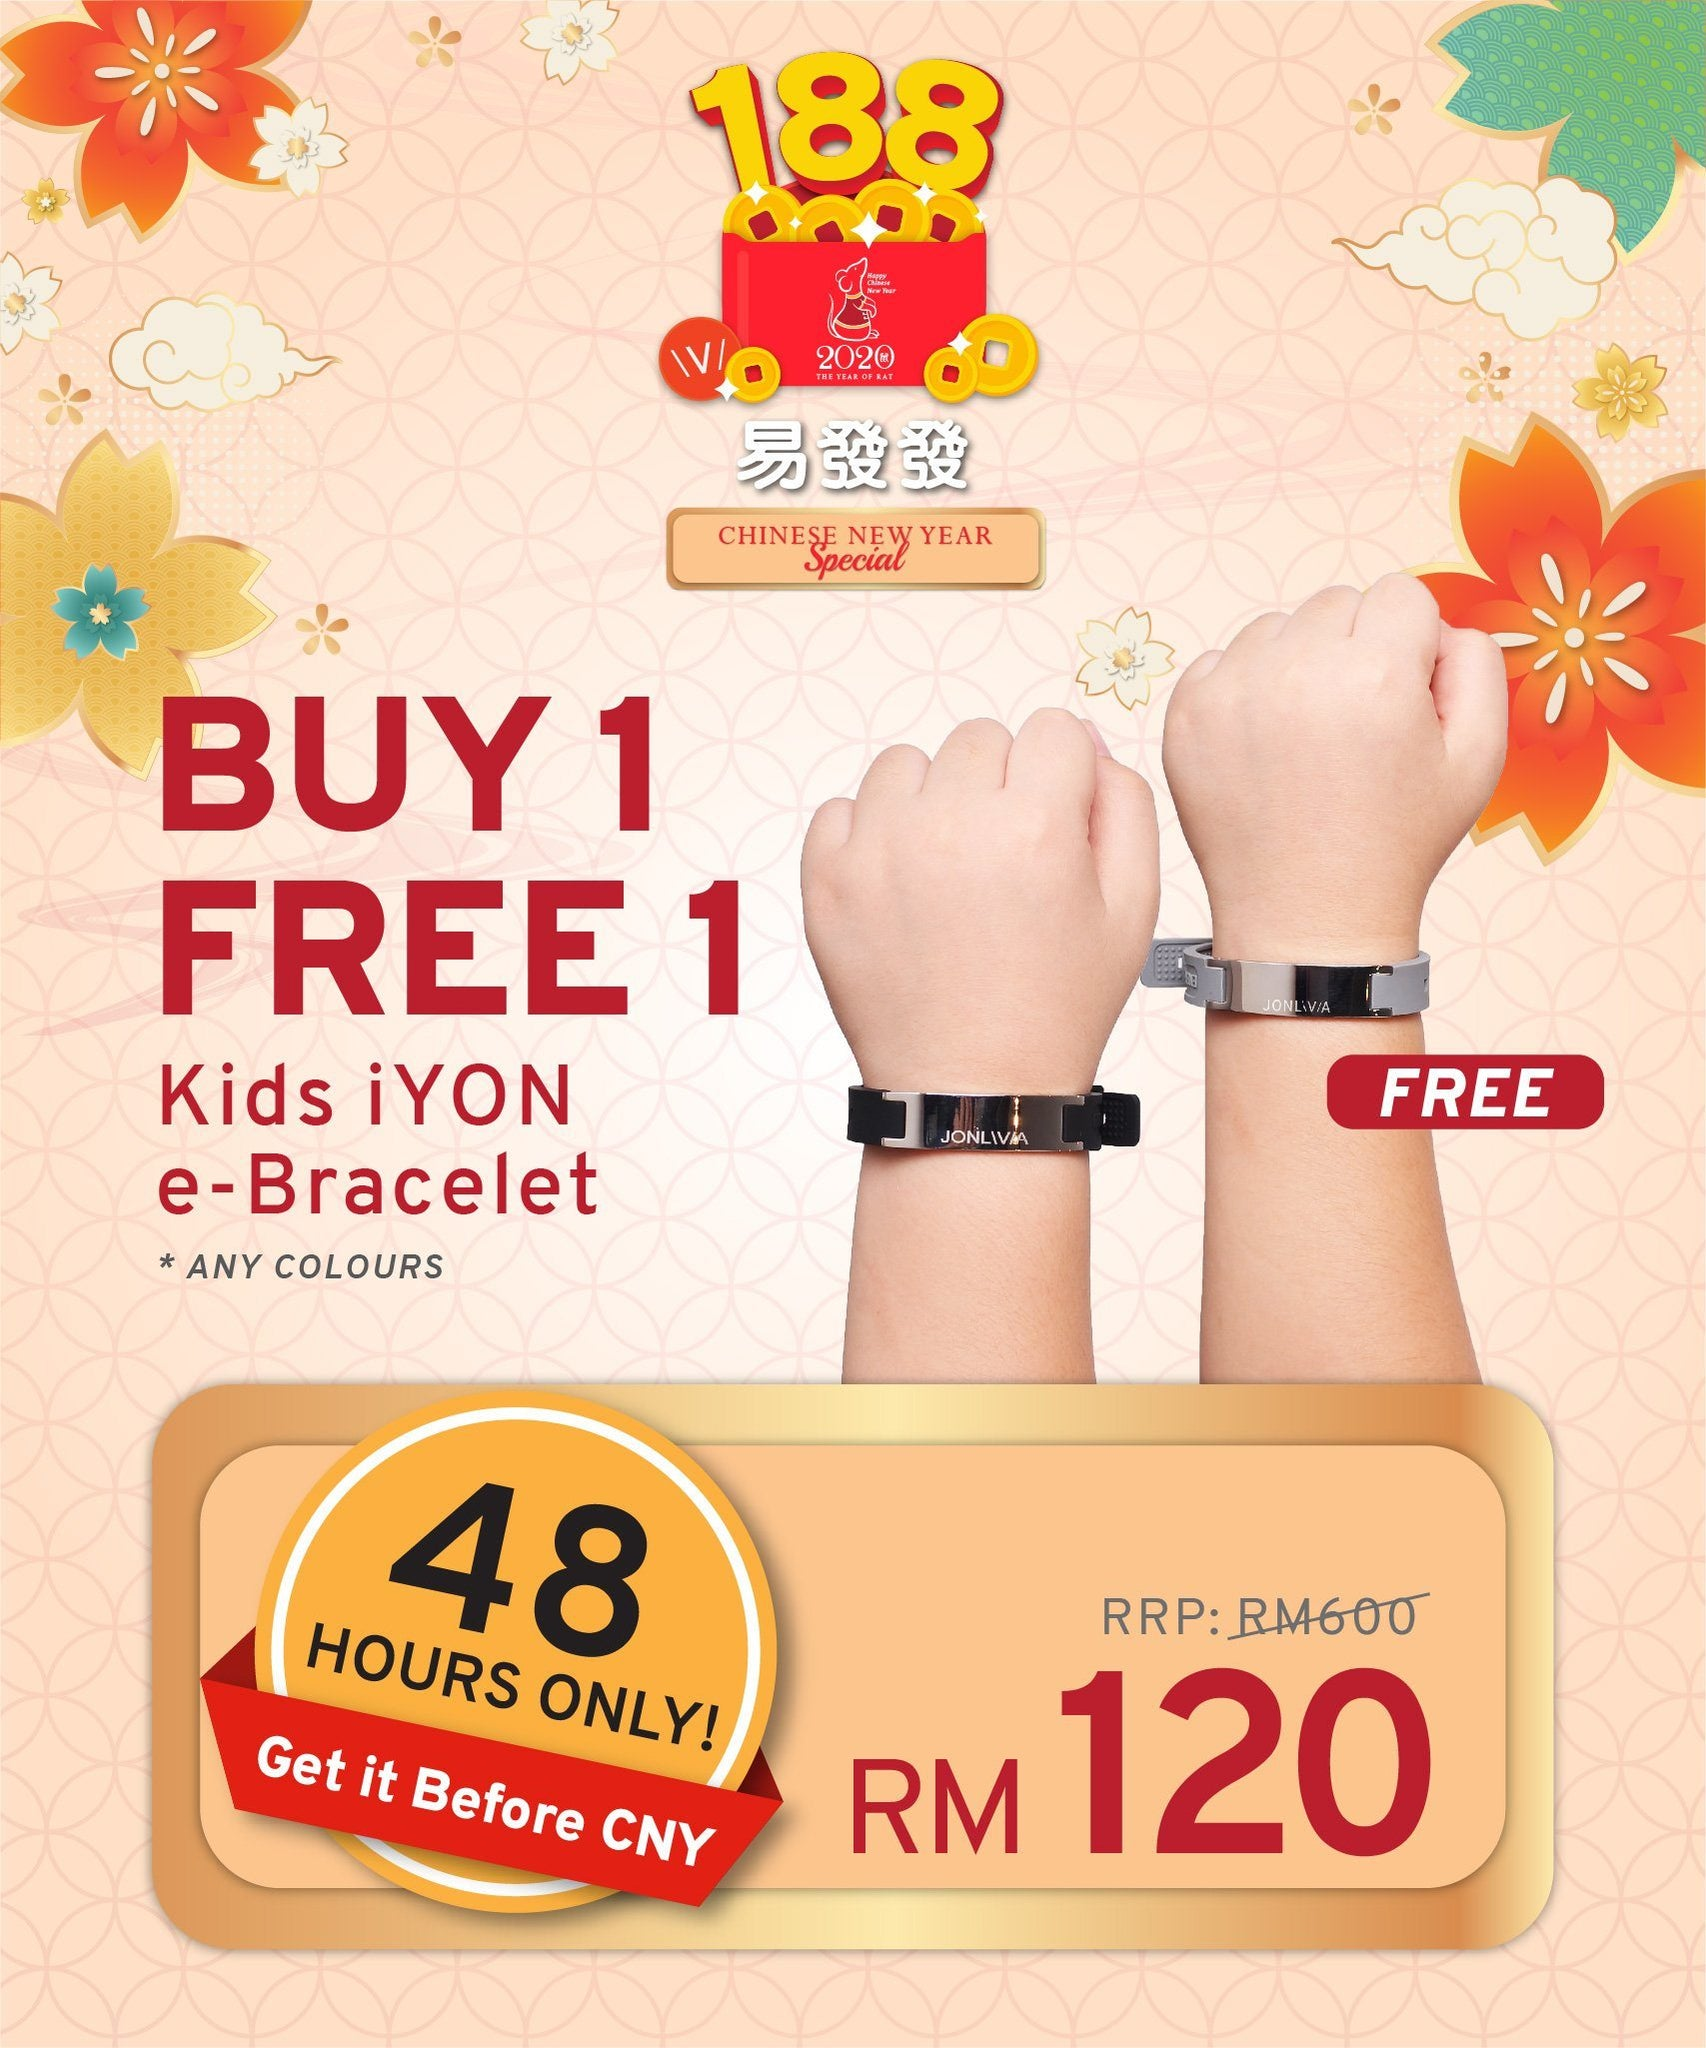 48 HOURS ONLY, BUY 1 FREE 1 iYON E-Bracelet [FOR KIDS] - Get it Before CNY